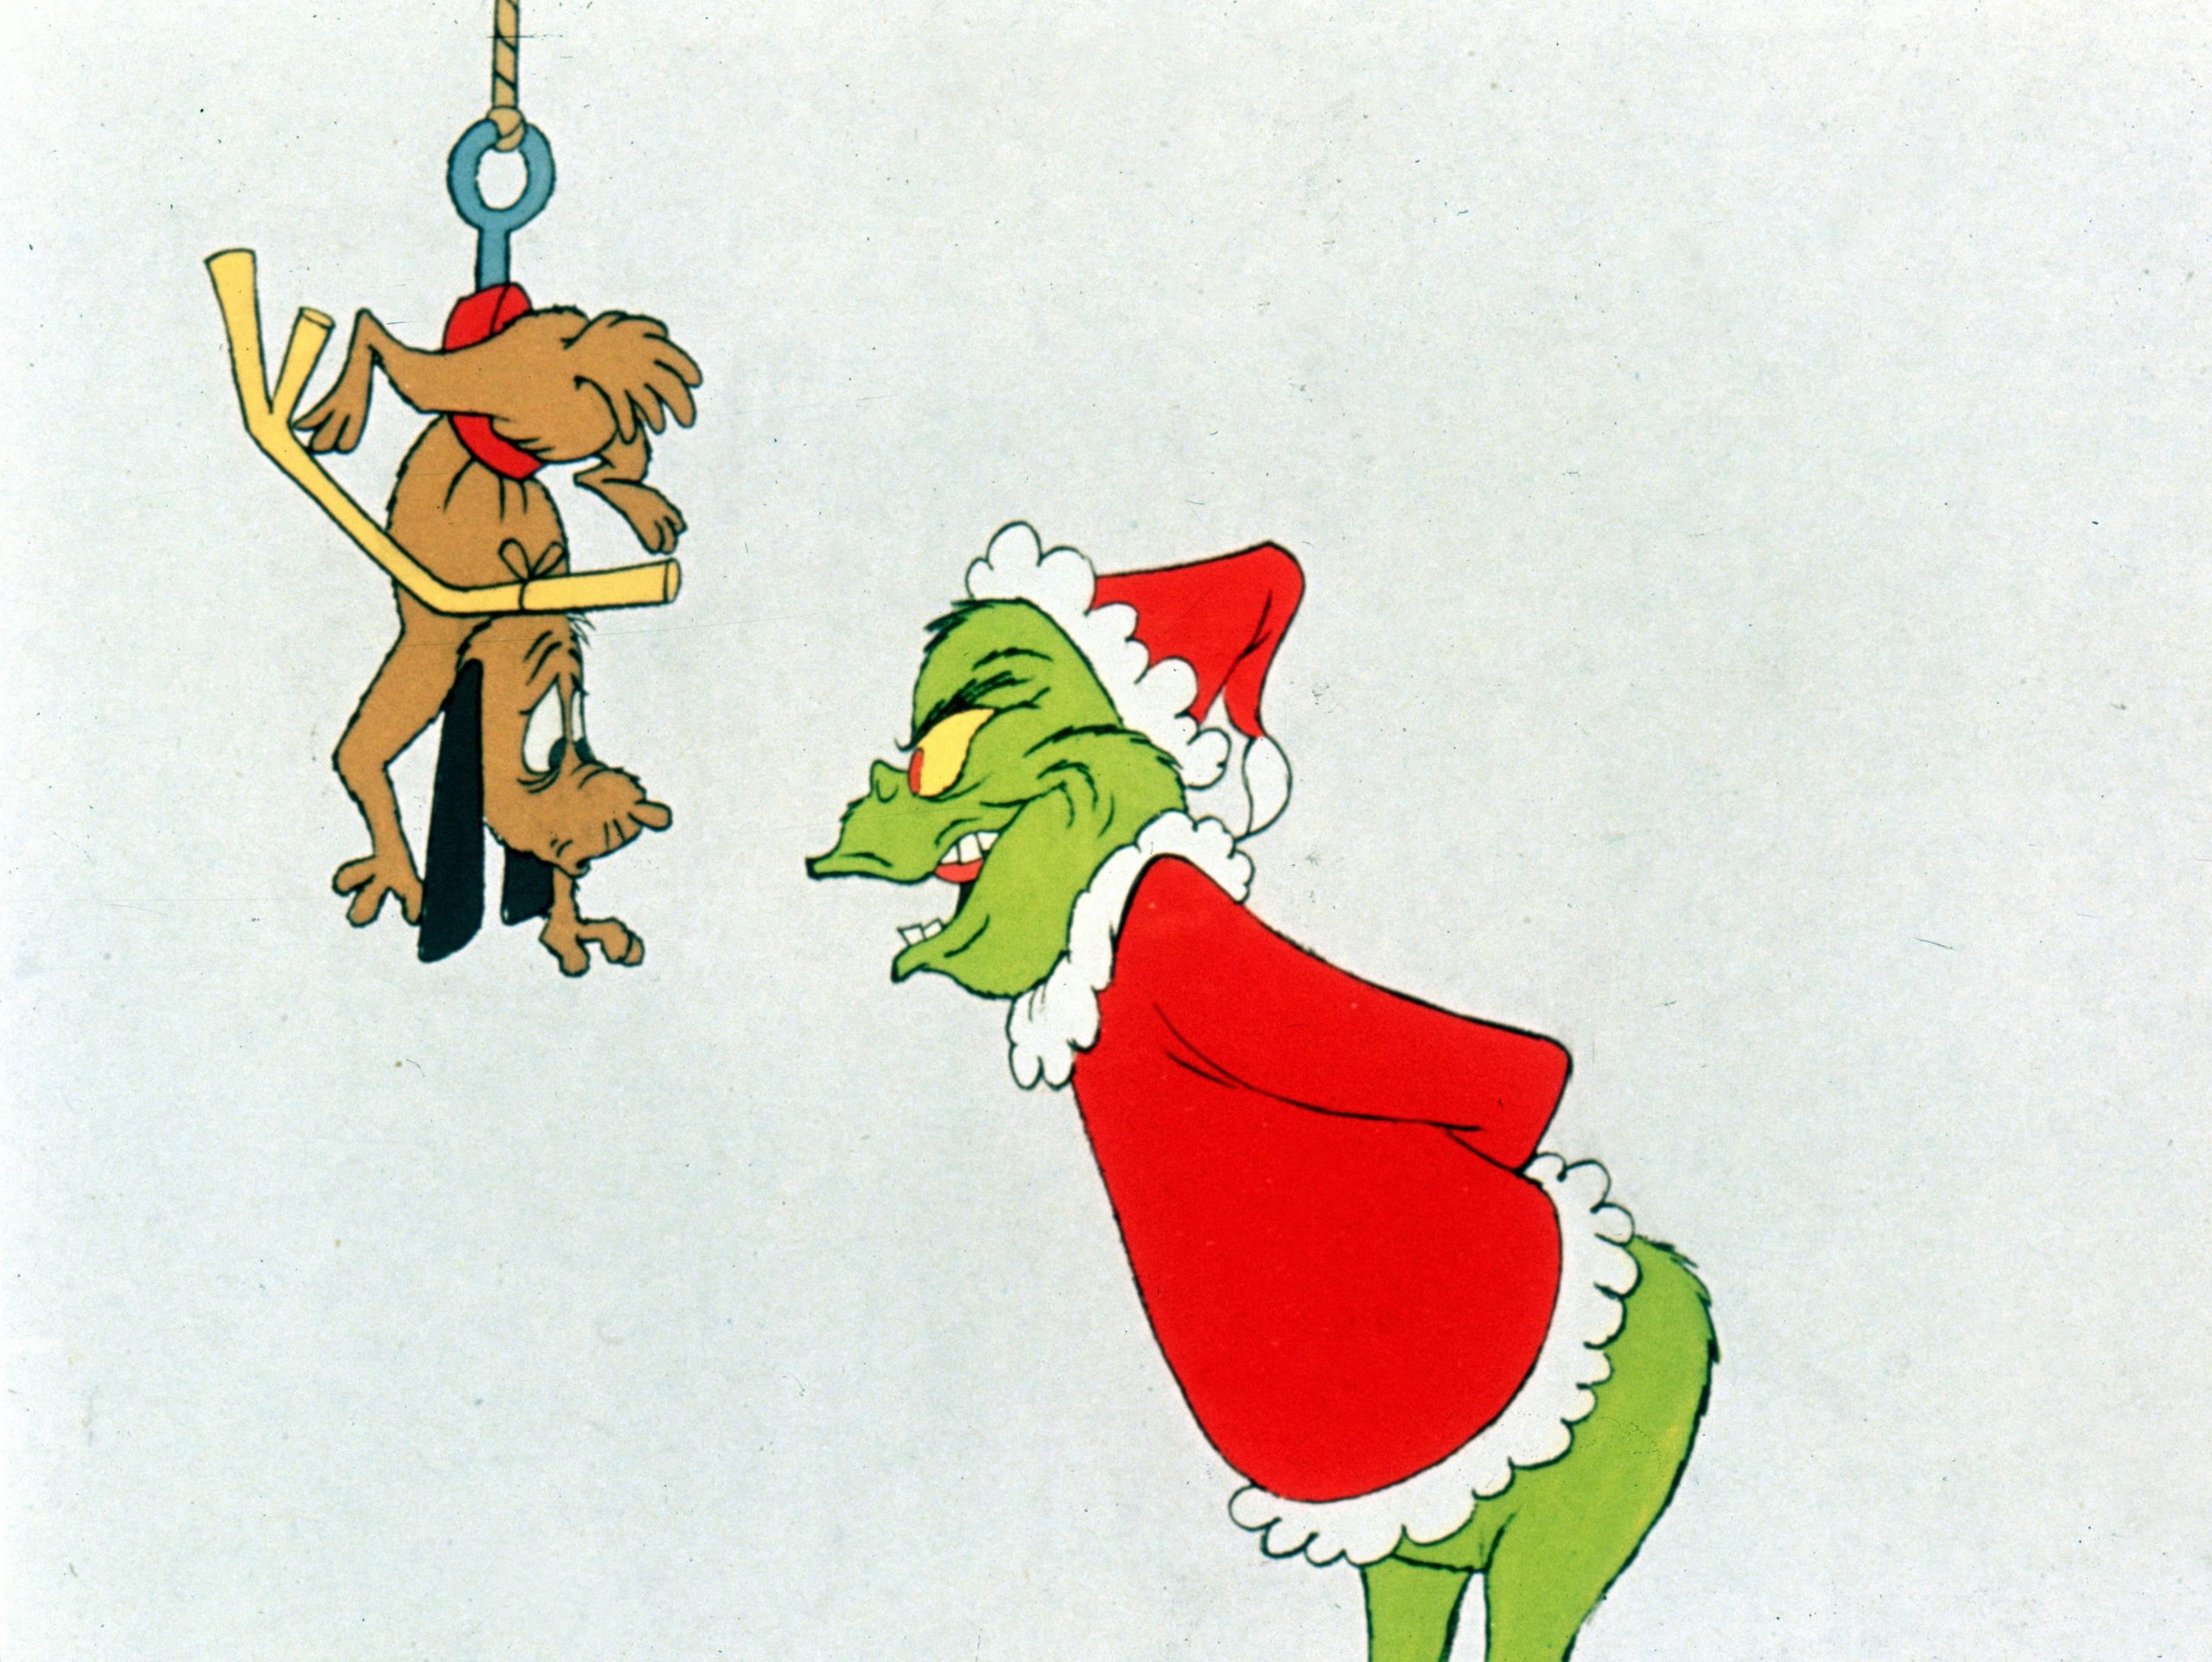 How The Grinch Stole Christmas scaled